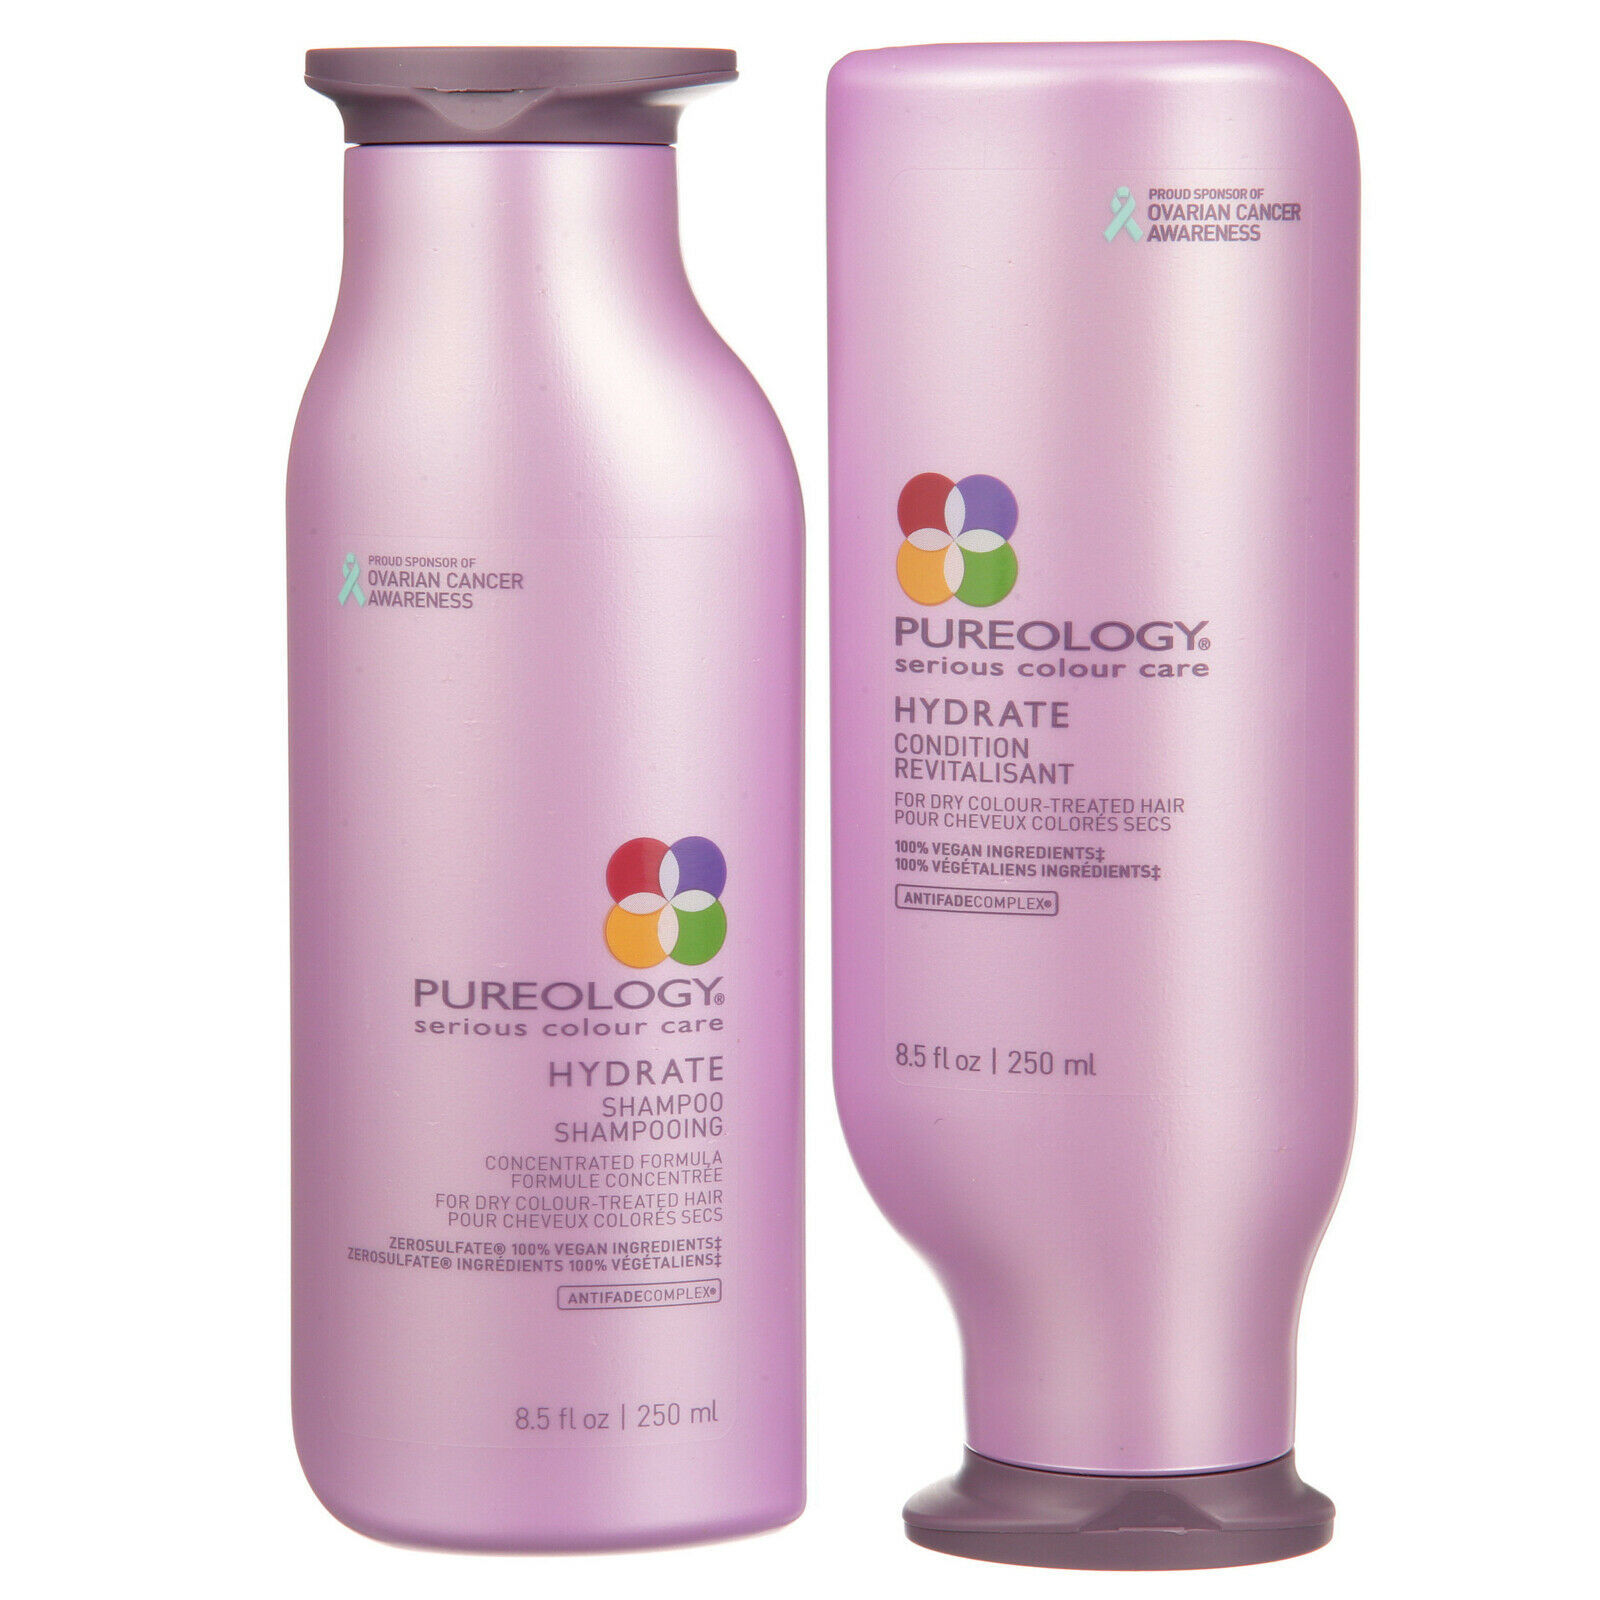 Pureology Hydrate Shampoo And Conditioner Set, 8.5 Oz. - $62.69